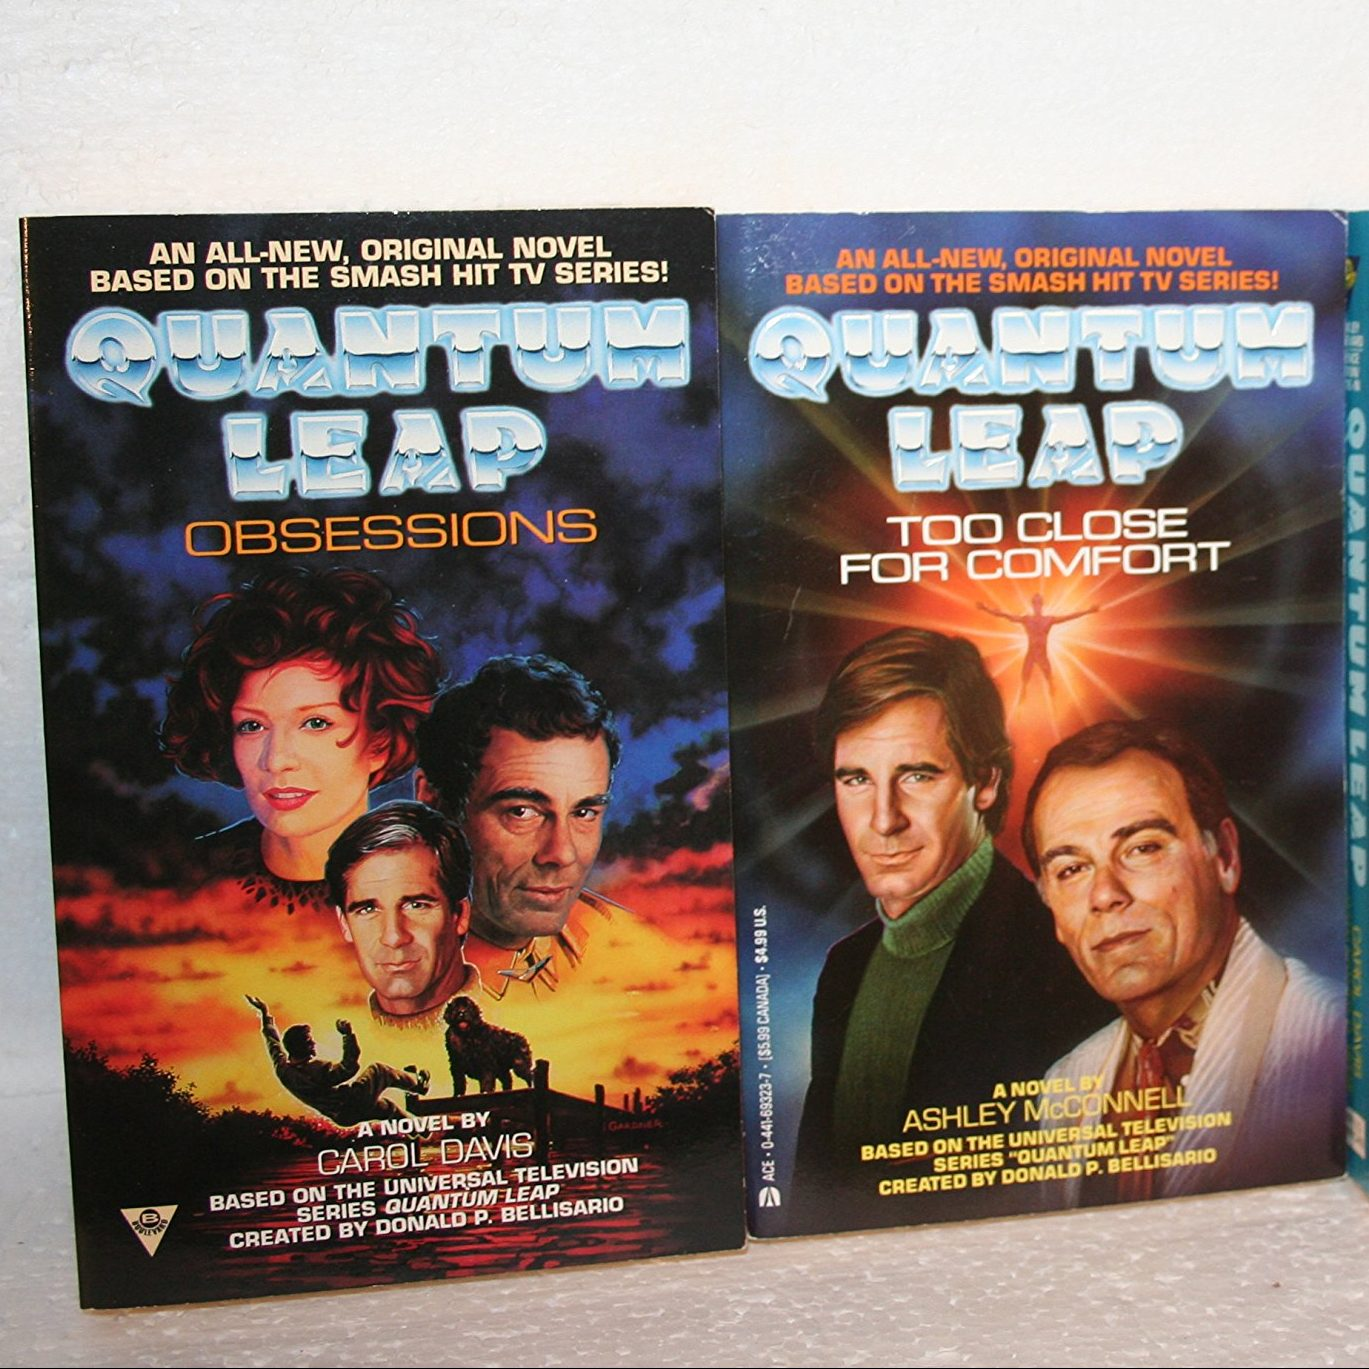 91hfALfKoIL e1603813923812 20 Facts About Quantum Leap That'll Really Take You Back